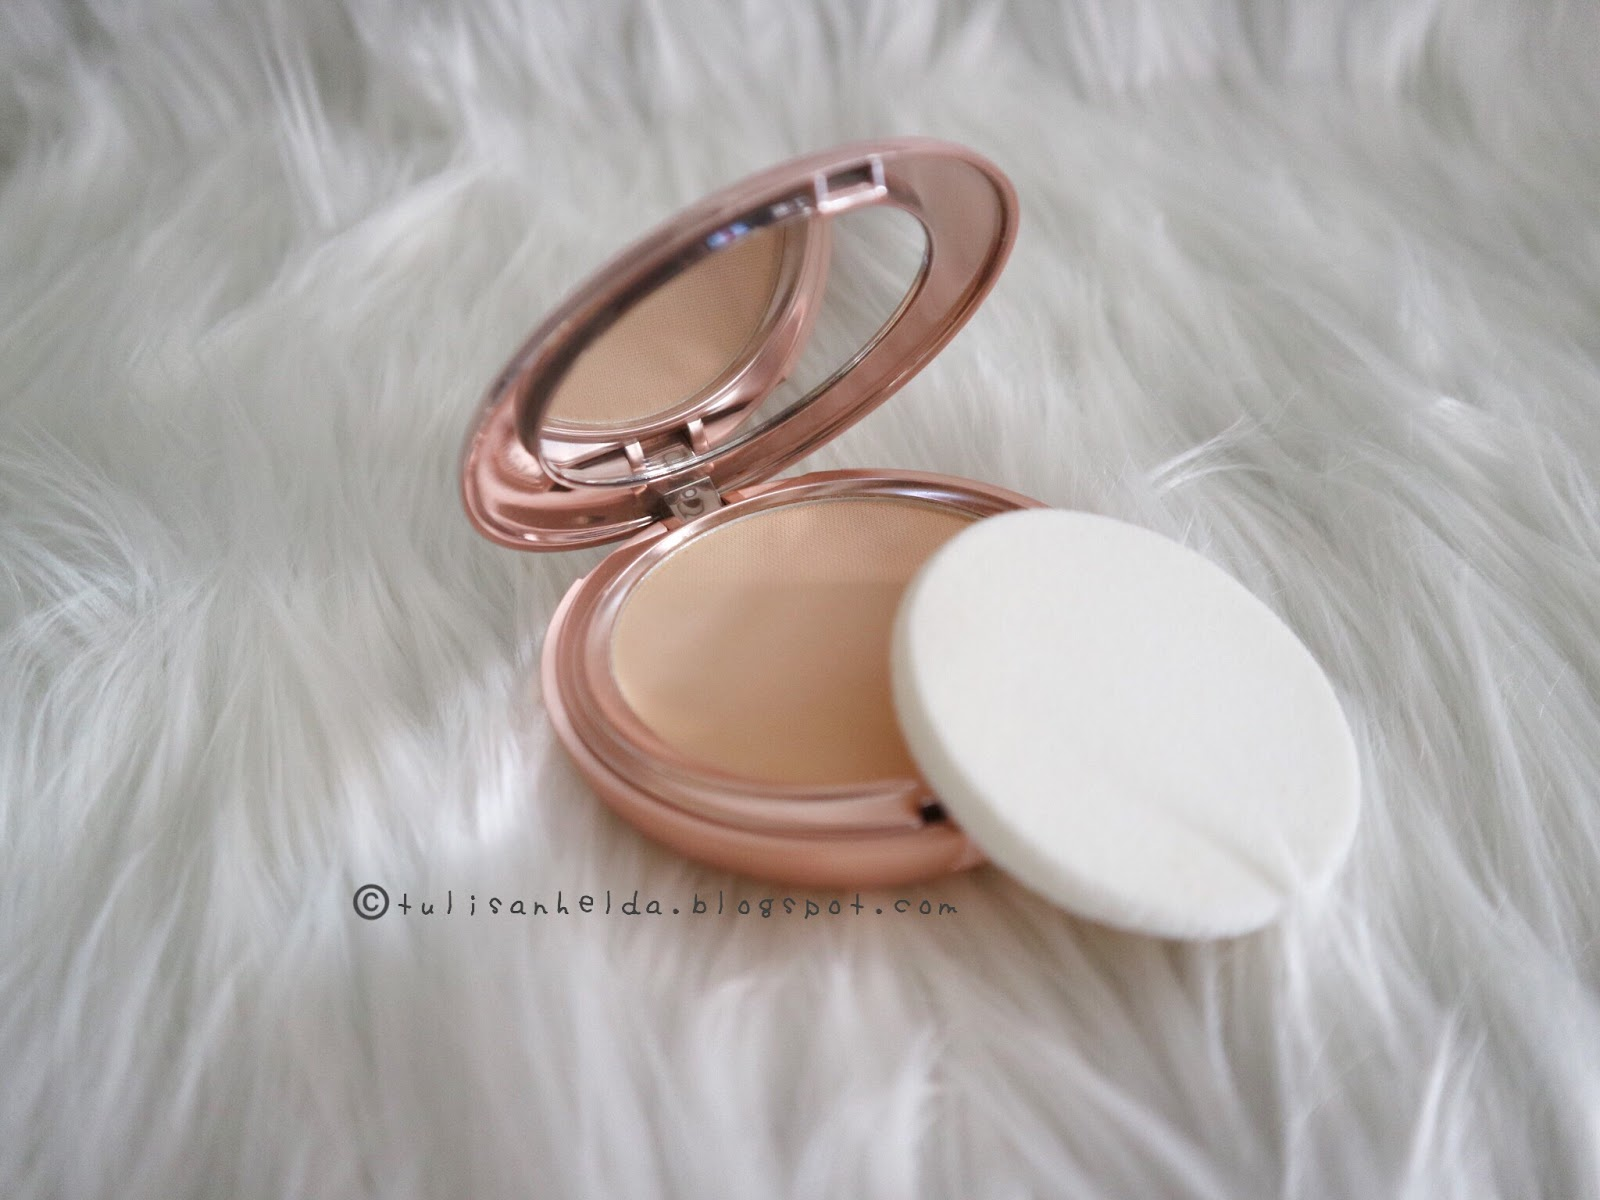 Review - Wardah Instaperfect Matte Fit Powder Foundation